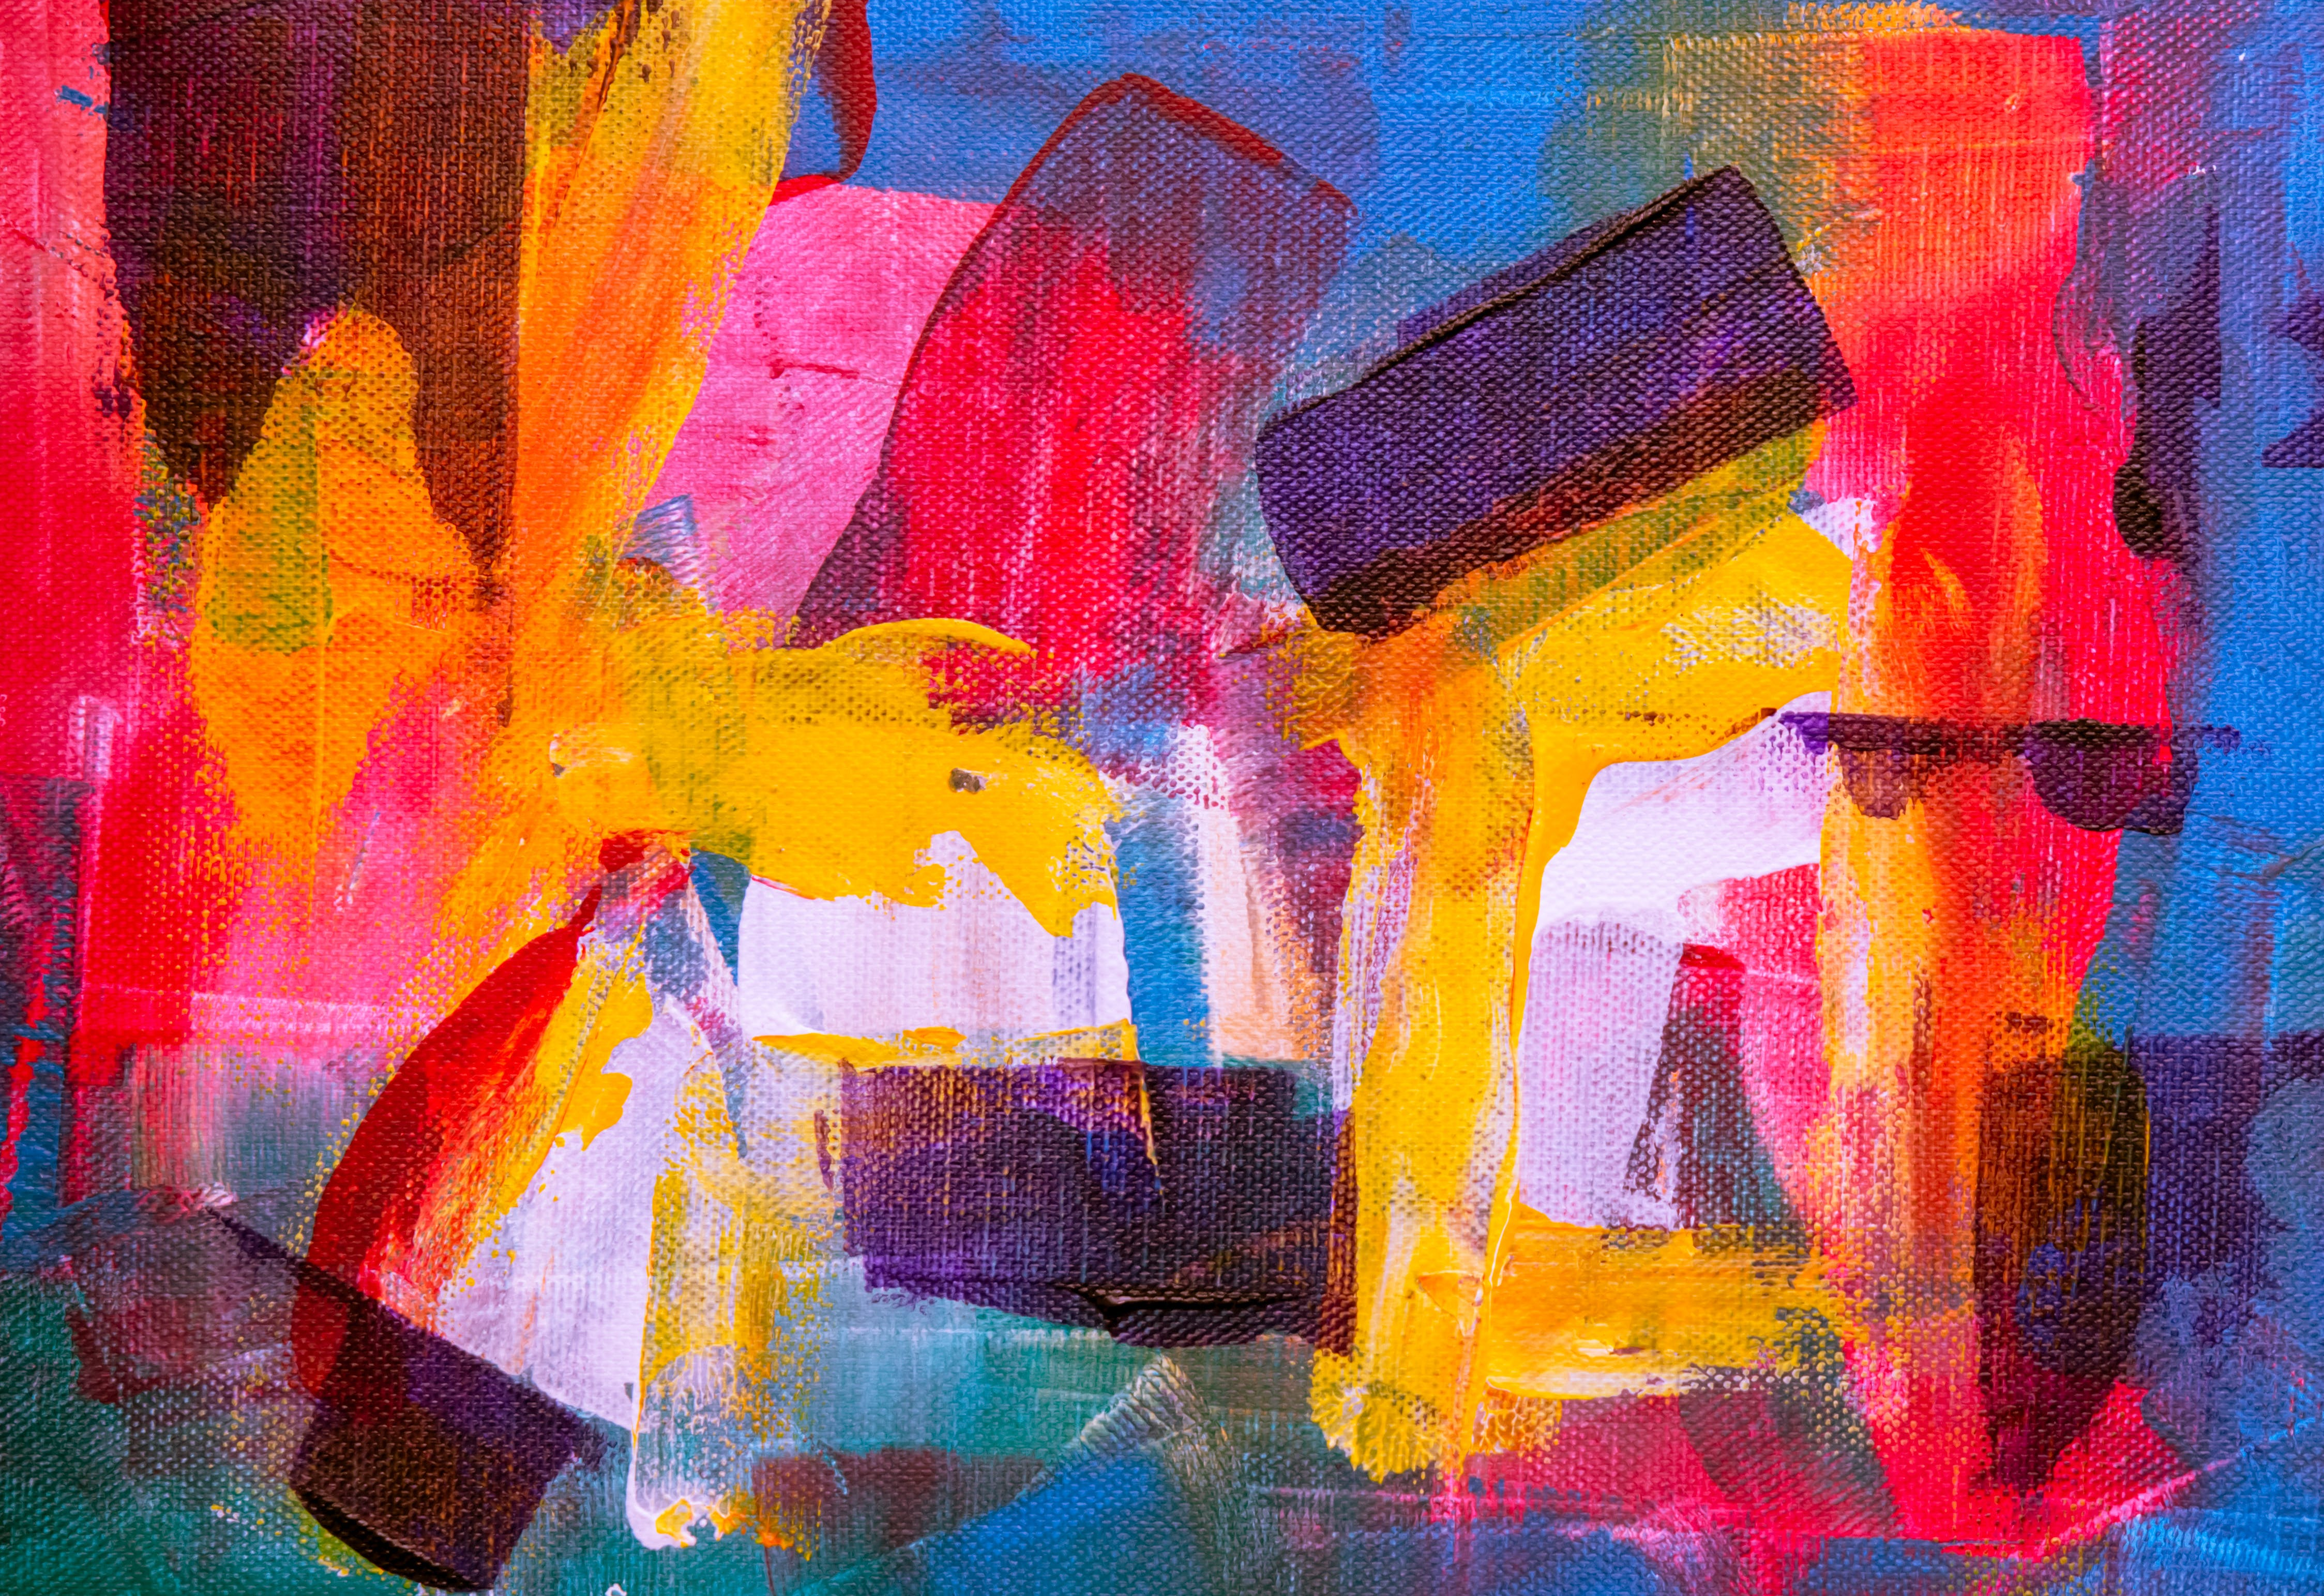 Red, Purple, and Blue Abstract Painting